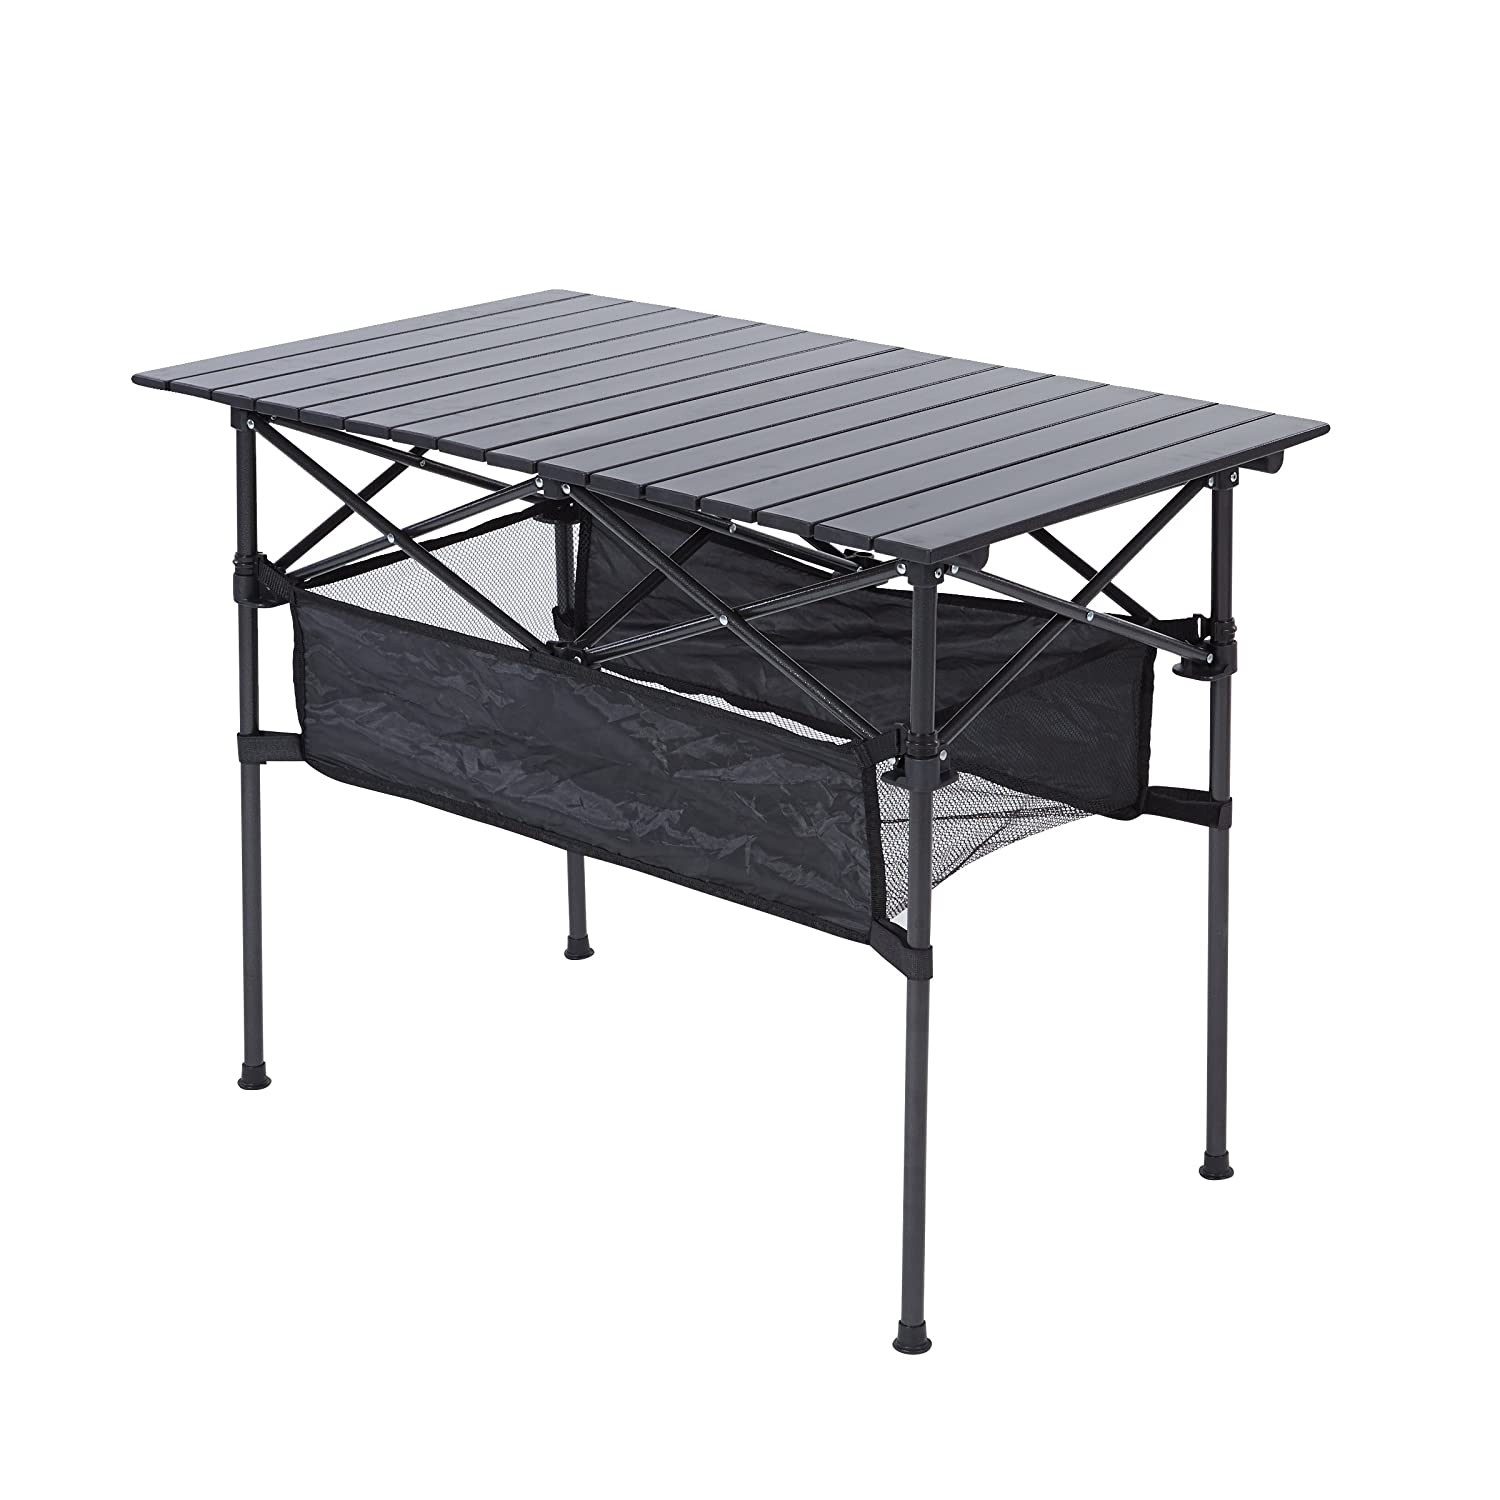 RORAIMA Easy Setup Portable Compact Aluminum Camping Folding Table 120Lbs Capacity Great Outdoor Camping, BBQ Playing Cards Product Size 27.56X27.56X27.56 Inch Carry Bag Black